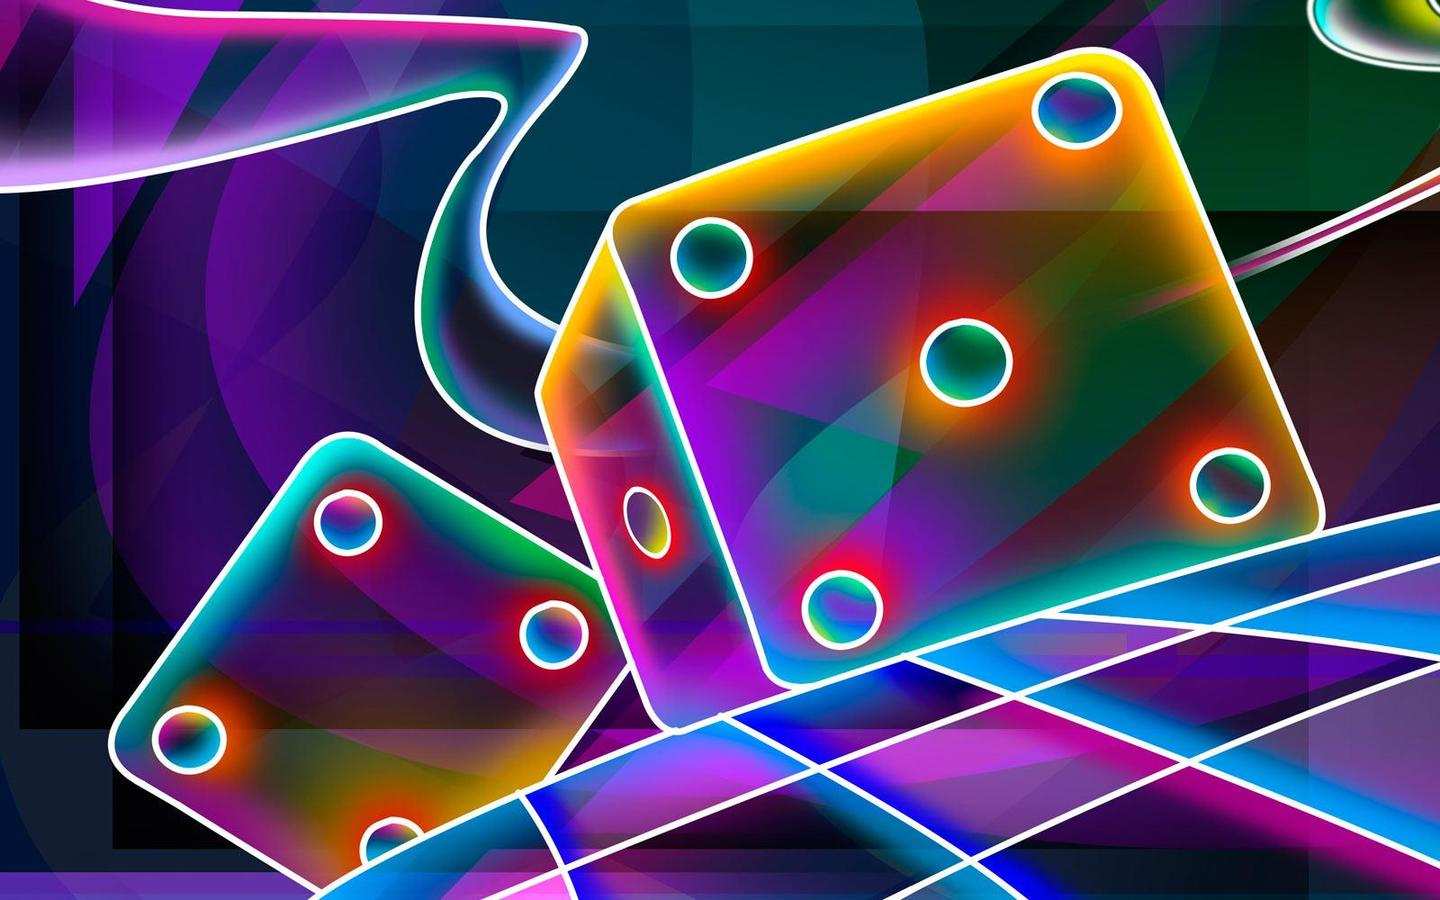 SJ:271 - Neon Wallpapers, Awesome Neon HD Wallpapers - W Web